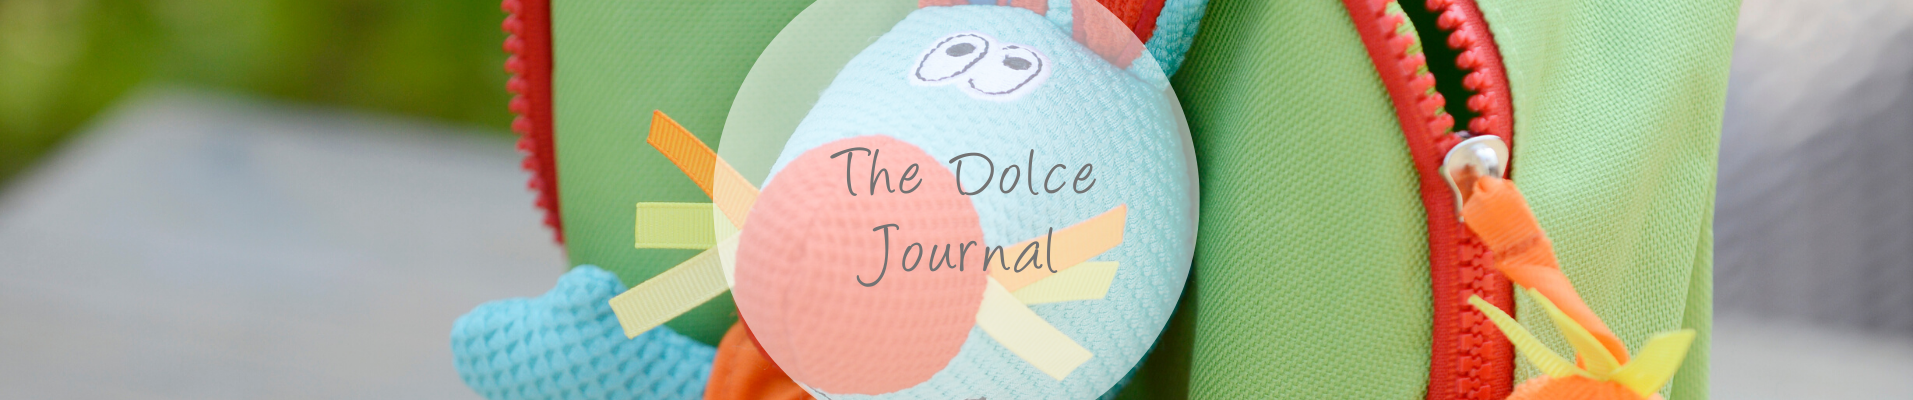 Blog Dolce Journal